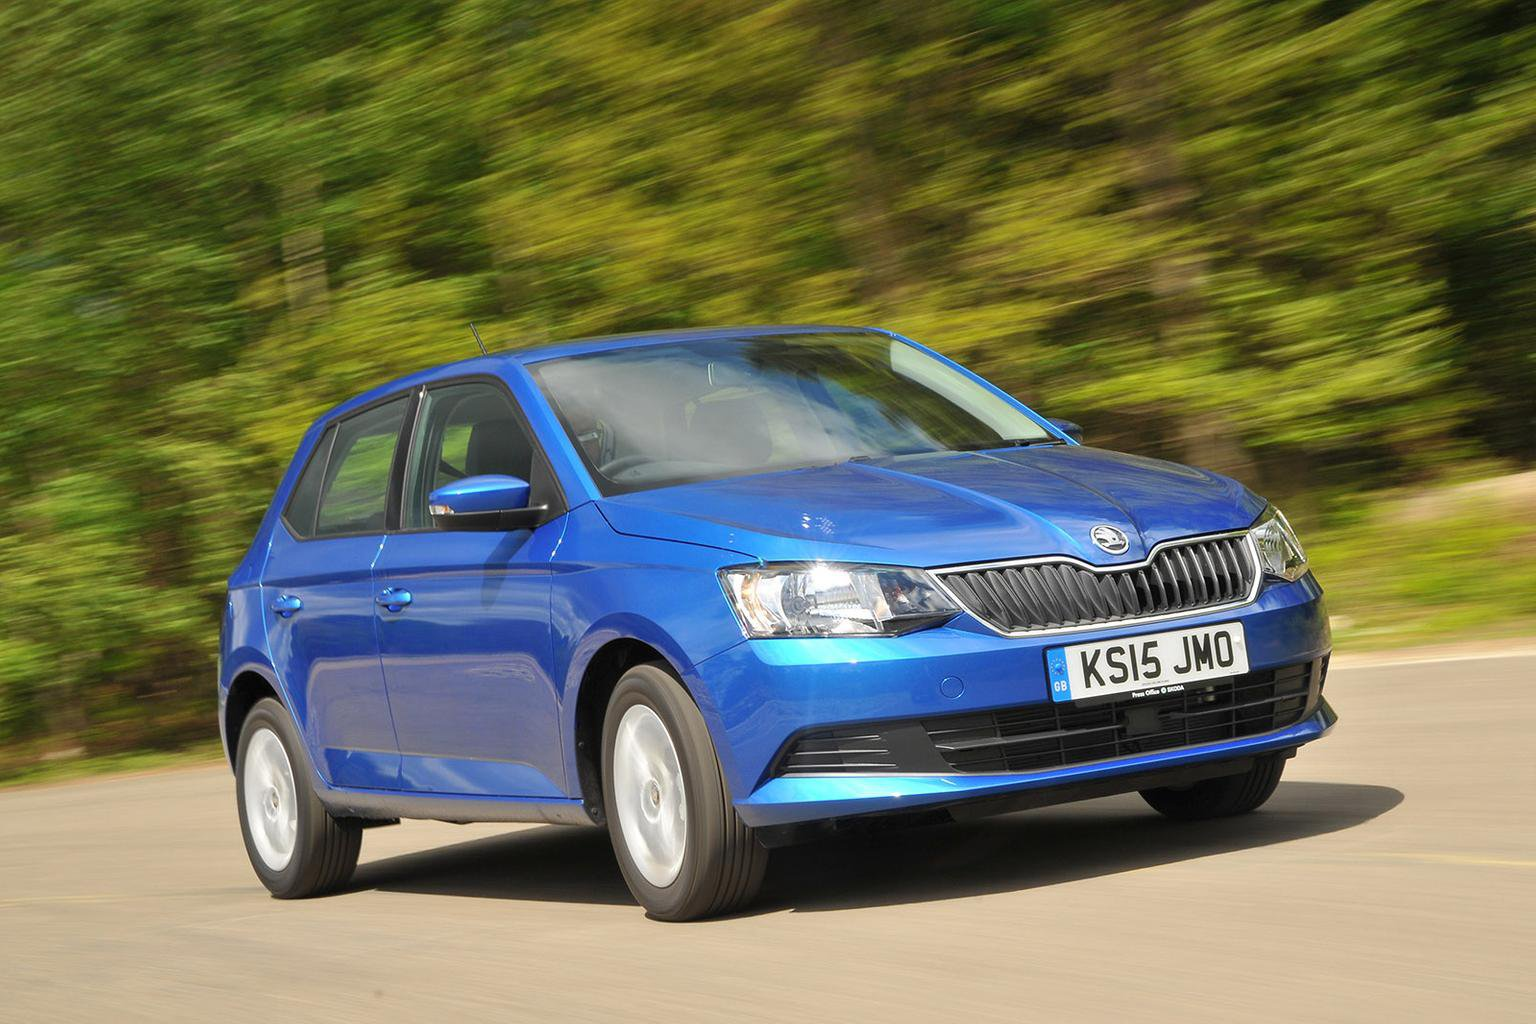 Skoda Fabia long-term review